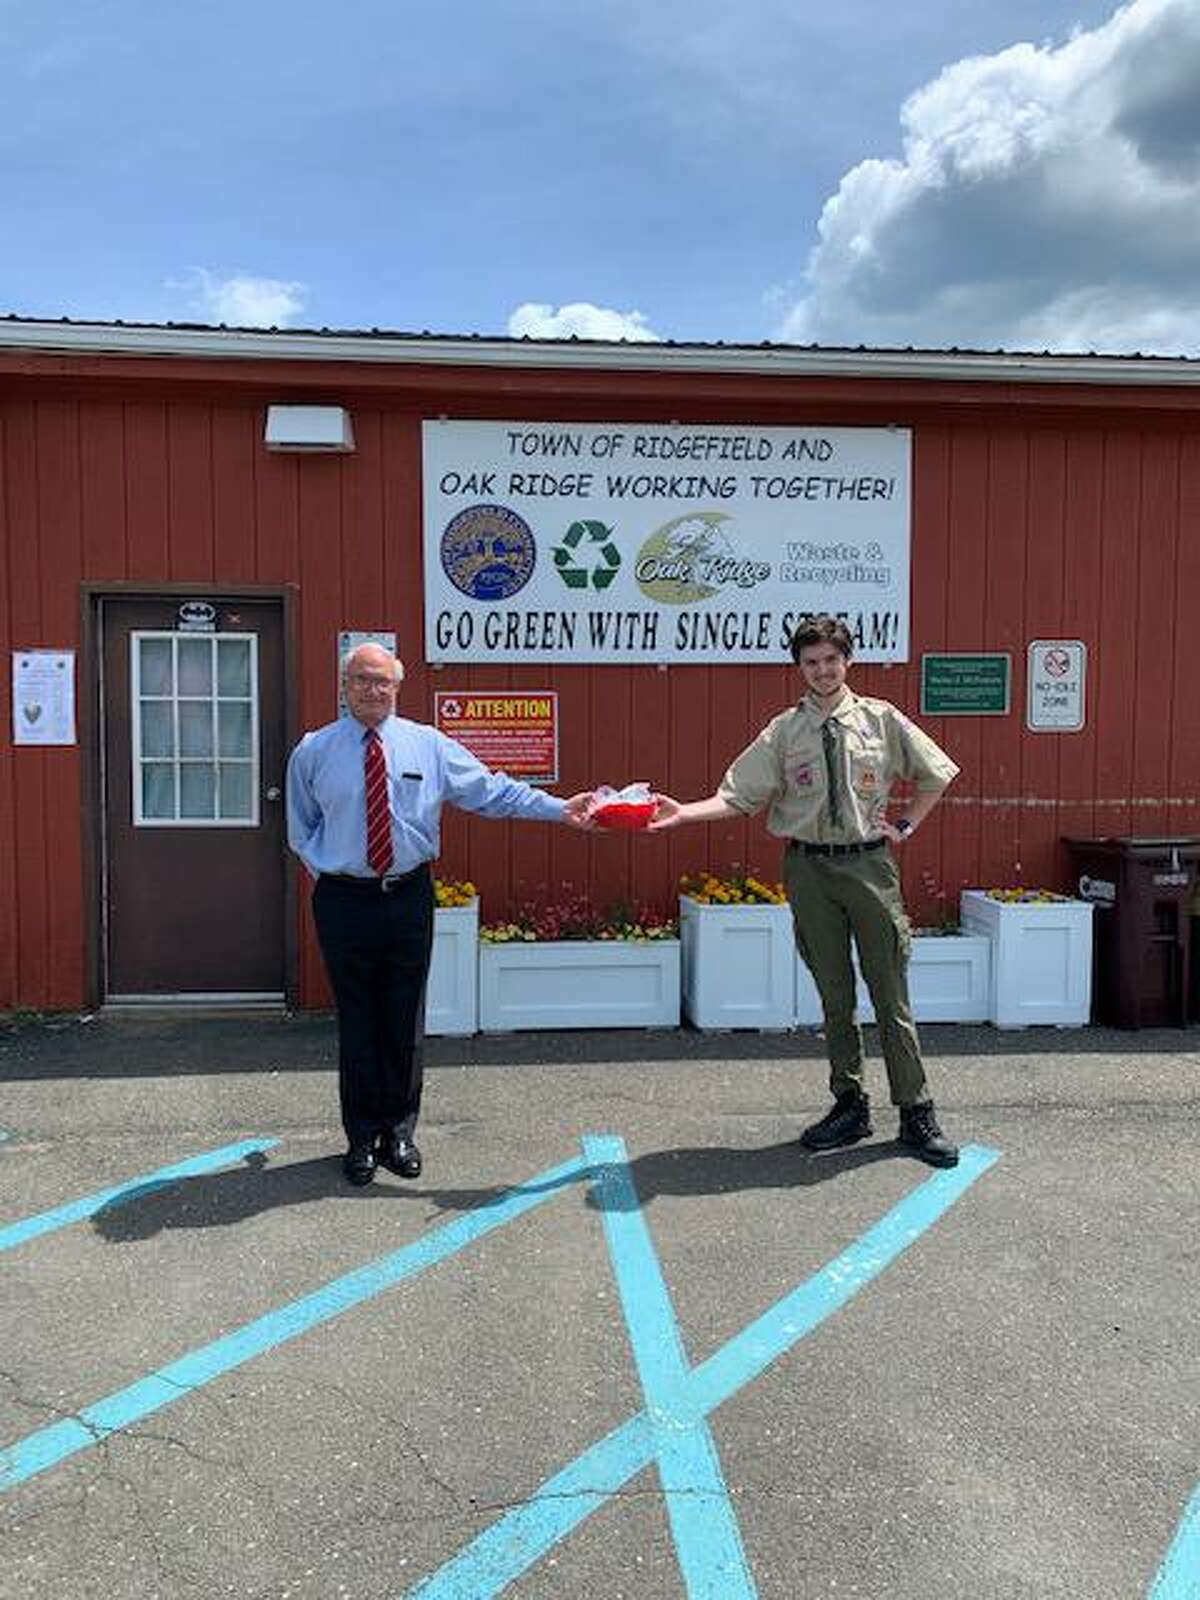 Grady Griffin recently completed his Eagle Scout Project for Troop 76 by designing five planters to beautify the Ridgefield Recycling Center. He designed the planters, ordered materials, coordinated volunteers and created work sessions to build them. Griffin also met with First Selectman Rudy Marconi during the project.